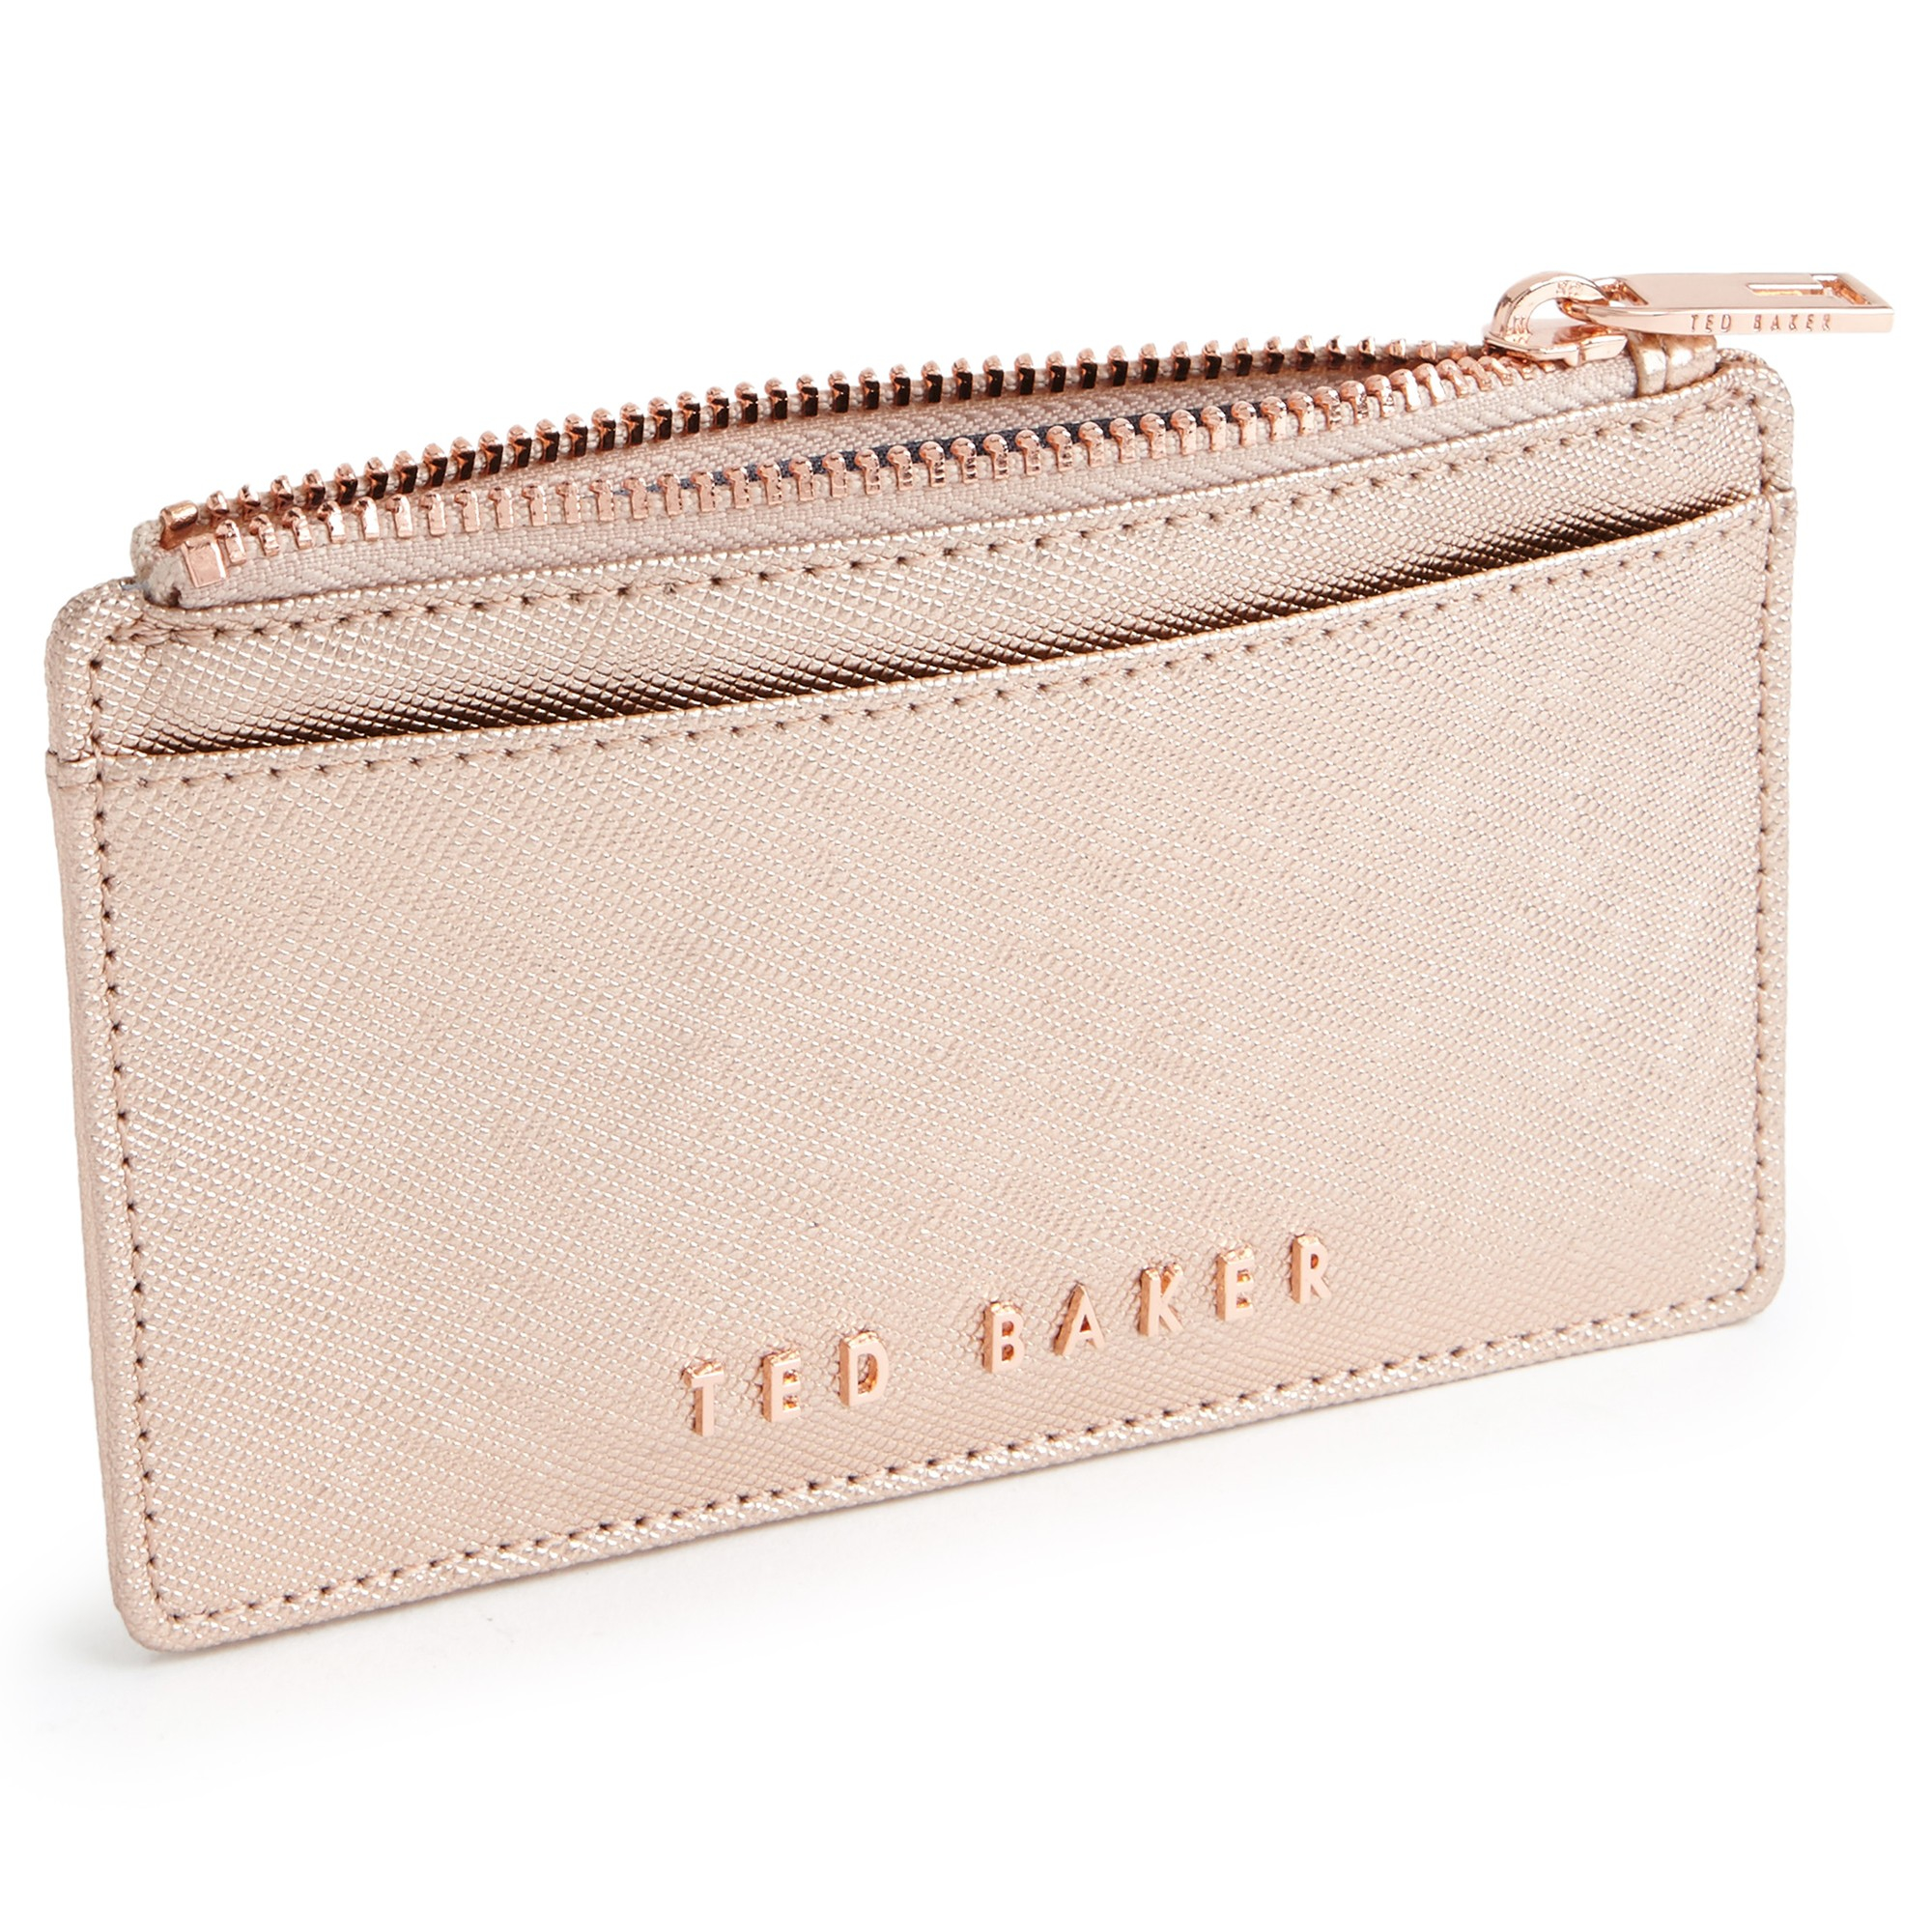 0c34bd265aff1 Ted Baker Coin Purse Uk - New image Of Purse